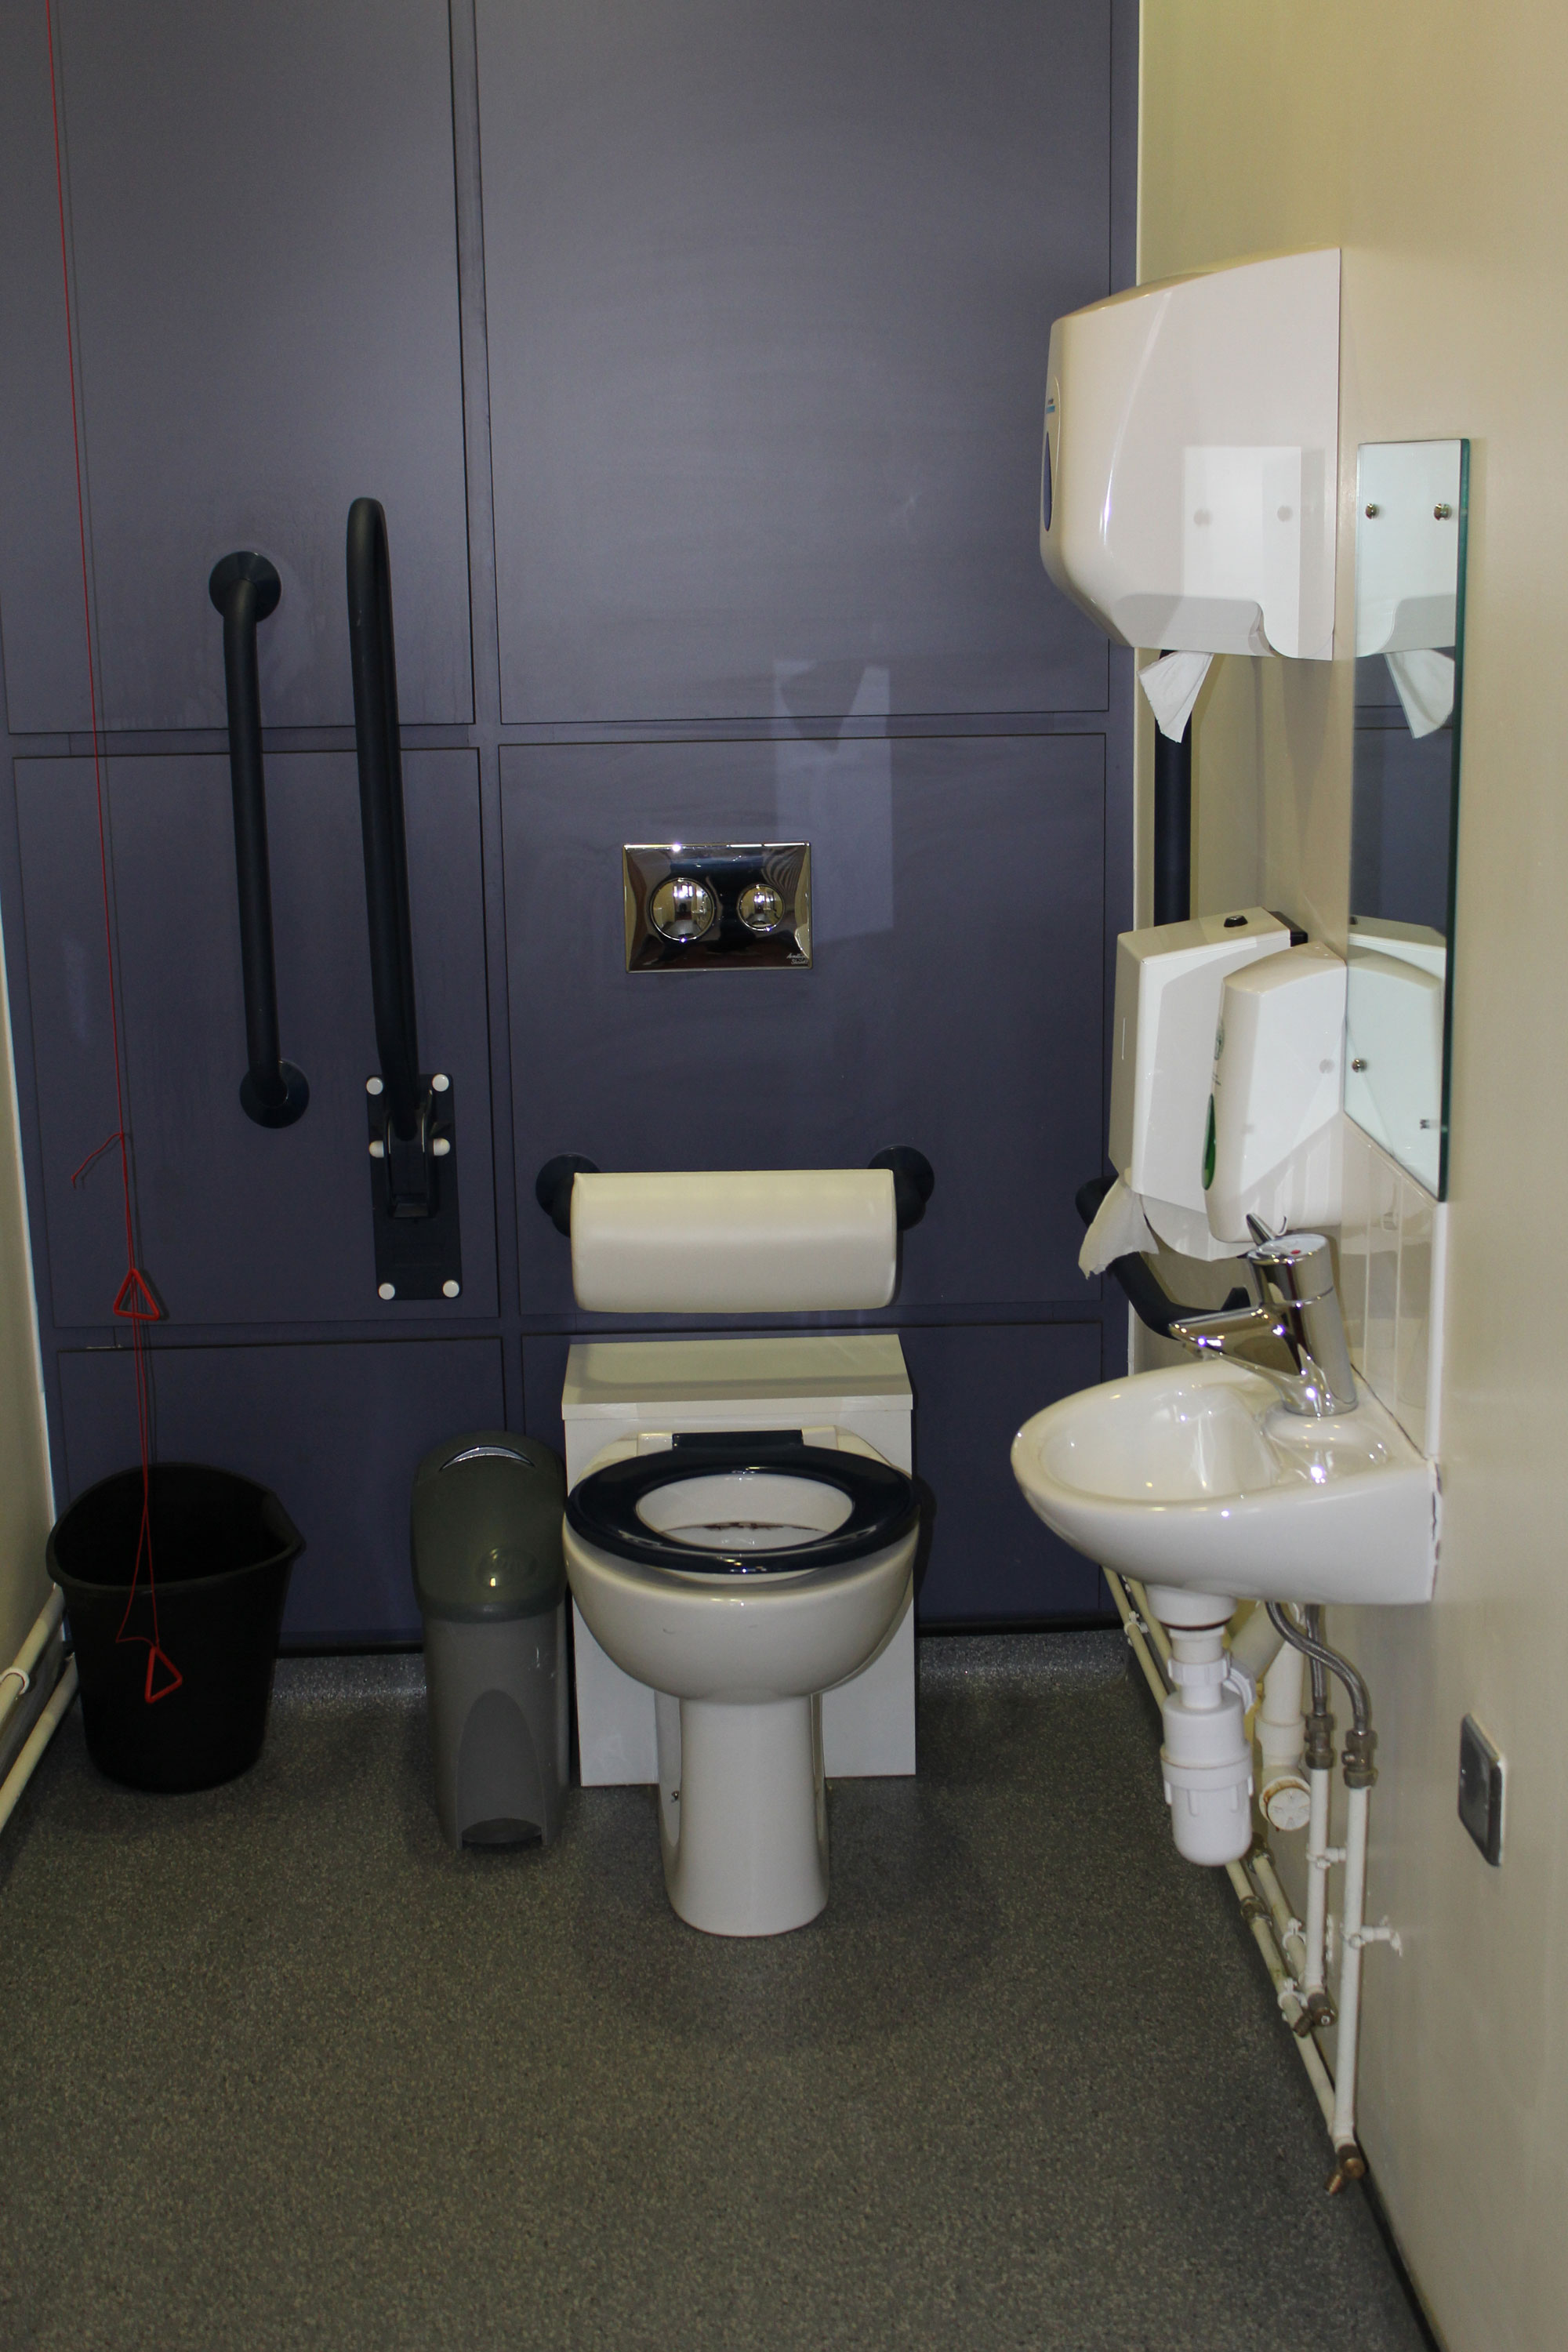 Image 1st floor disabled toilet facilities